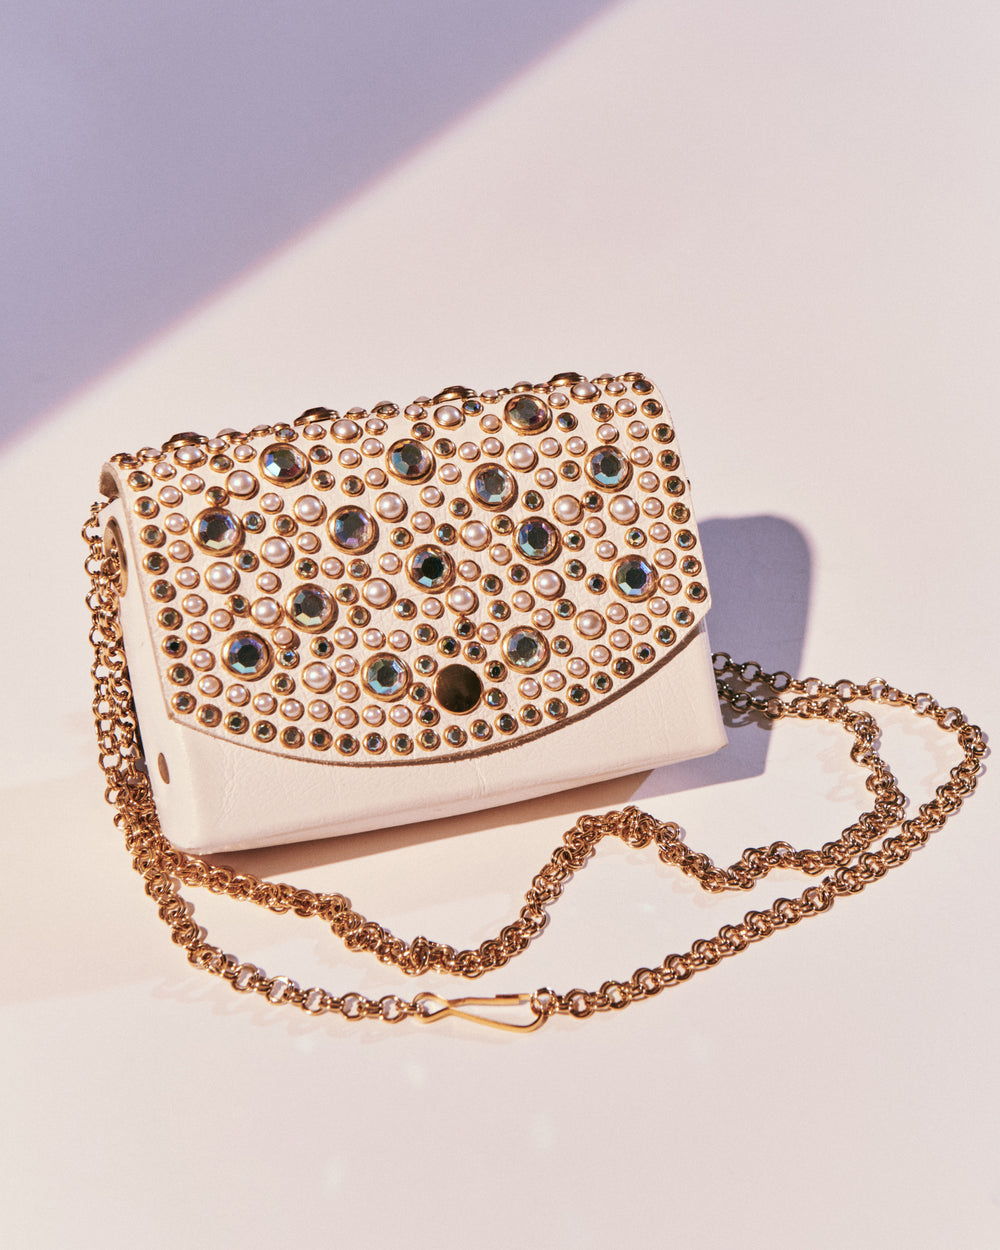 Rhinestone Leather Purse